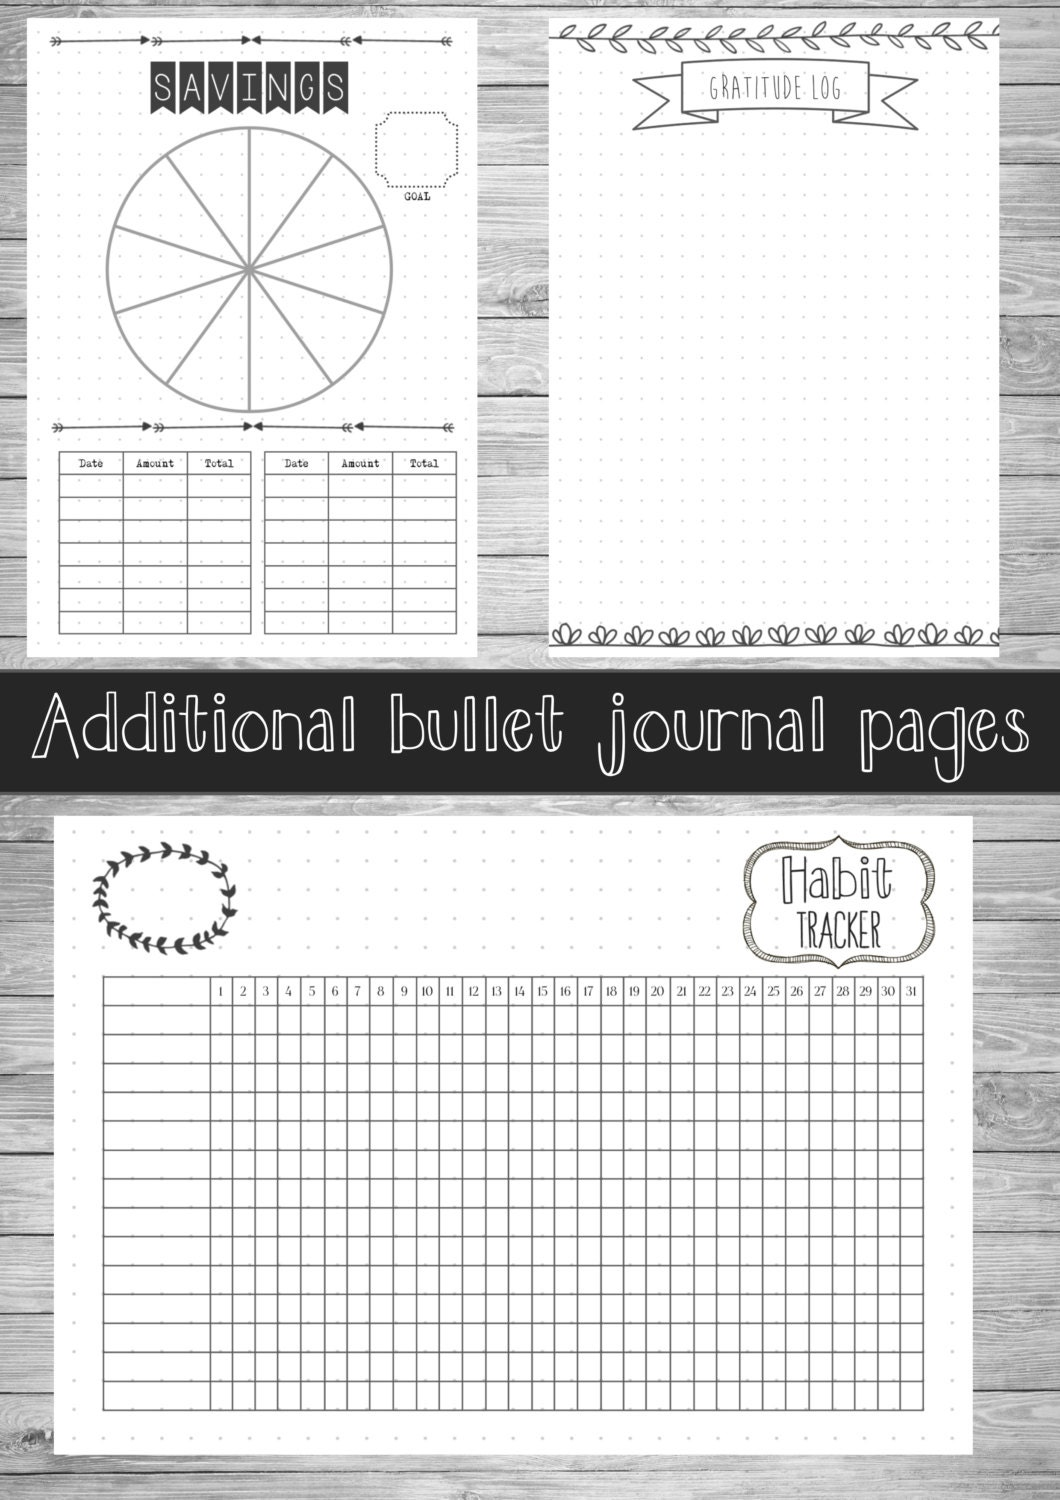 Ridiculous image inside printable bullet journal pages